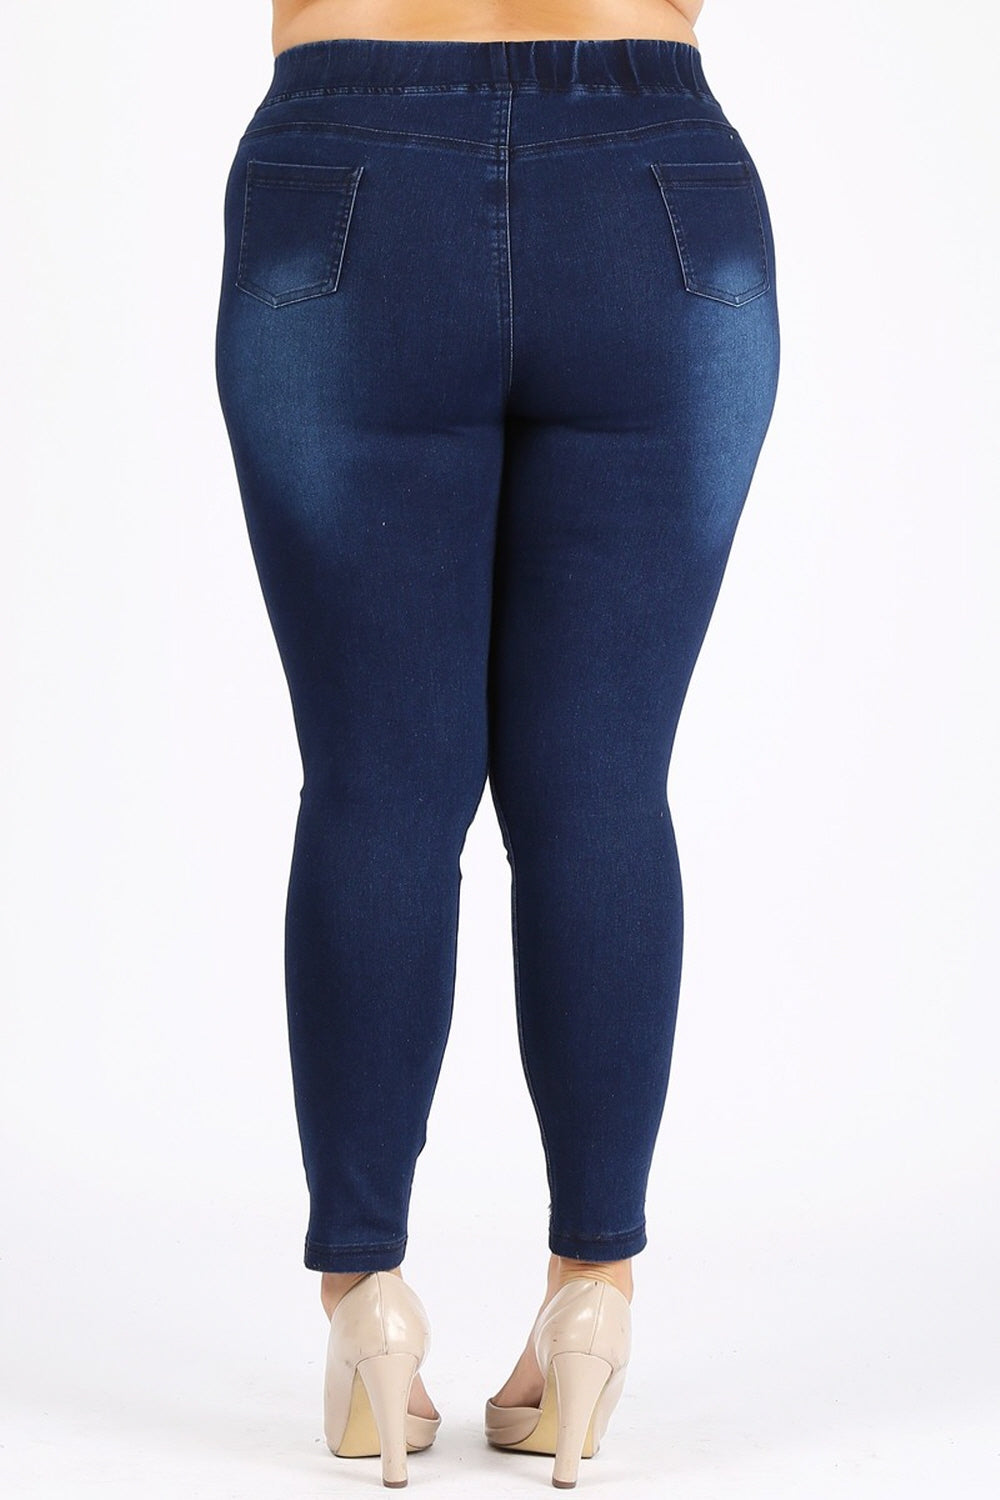 Extended plus size denim jeggings jeans waist-hugging 4XL 5XL 6XL